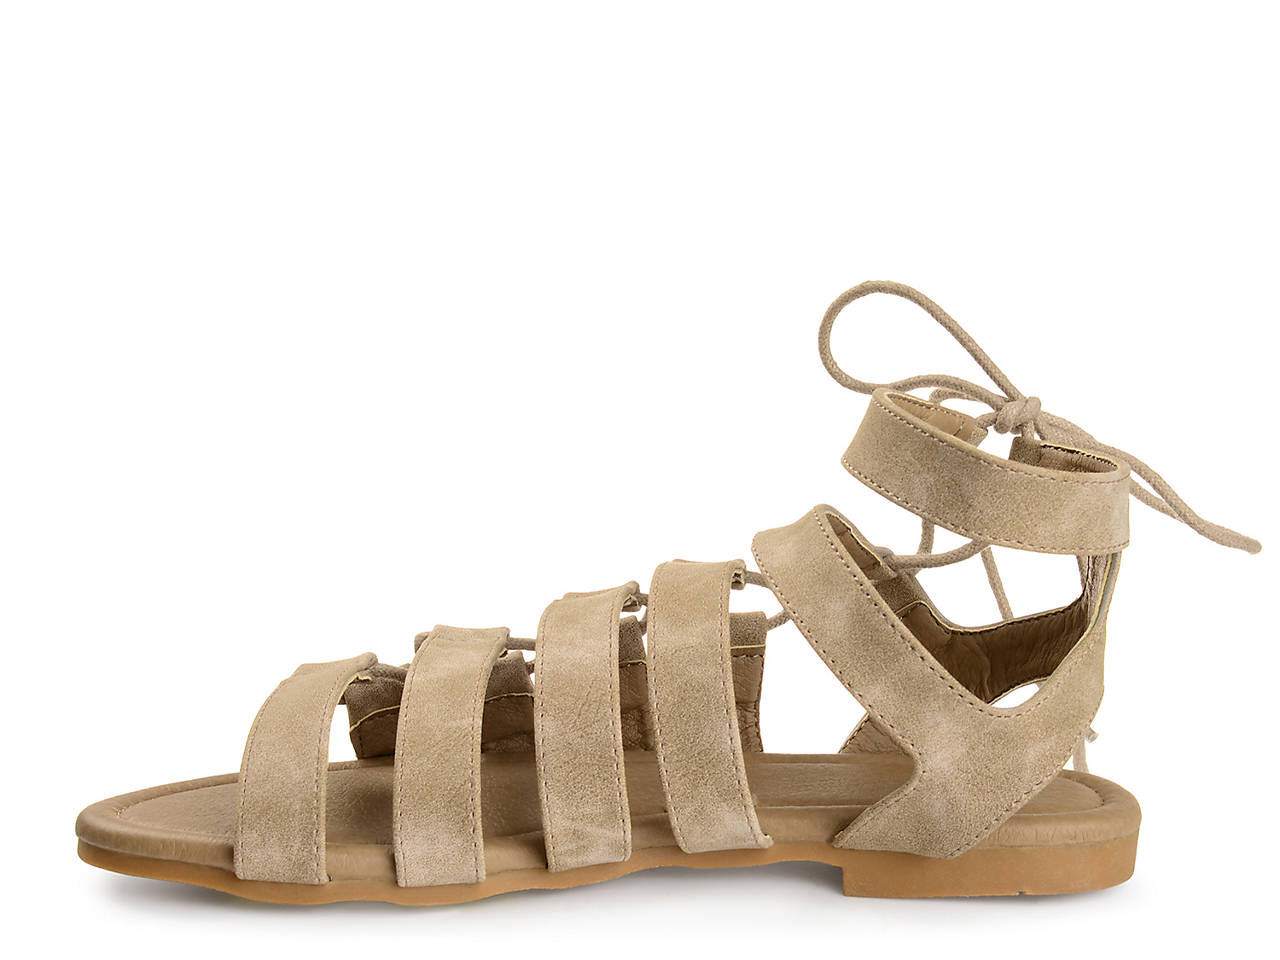 6e20ec5f929acd Journee Collection Cleo Gladiator Sandal Women s Shoes